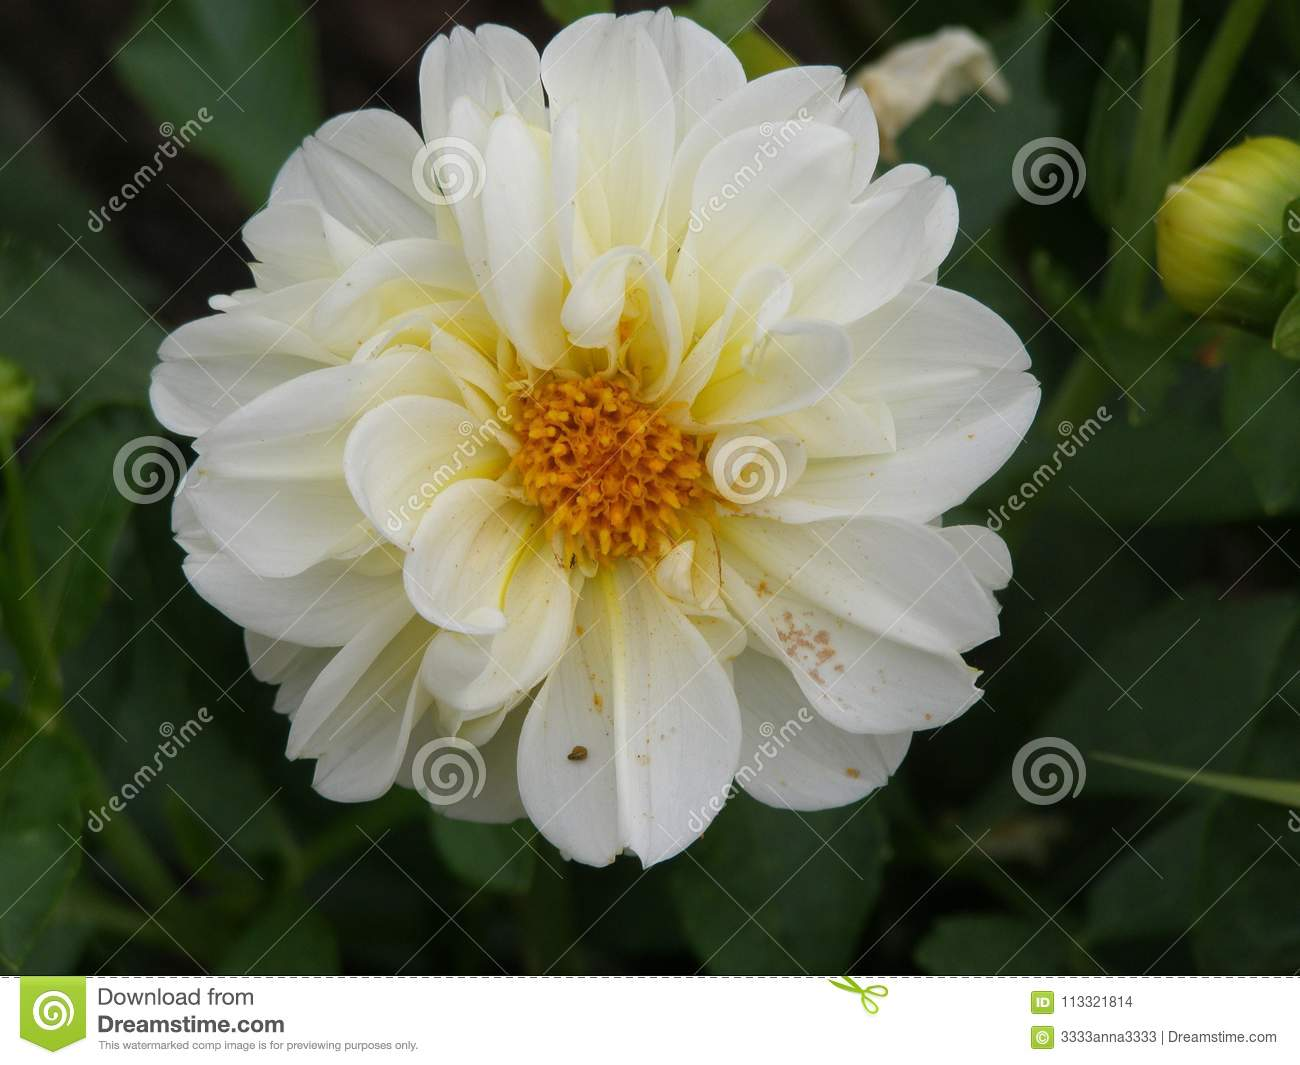 White With A Yellow Center Dahlia Is A Flower Famous For Dazzling